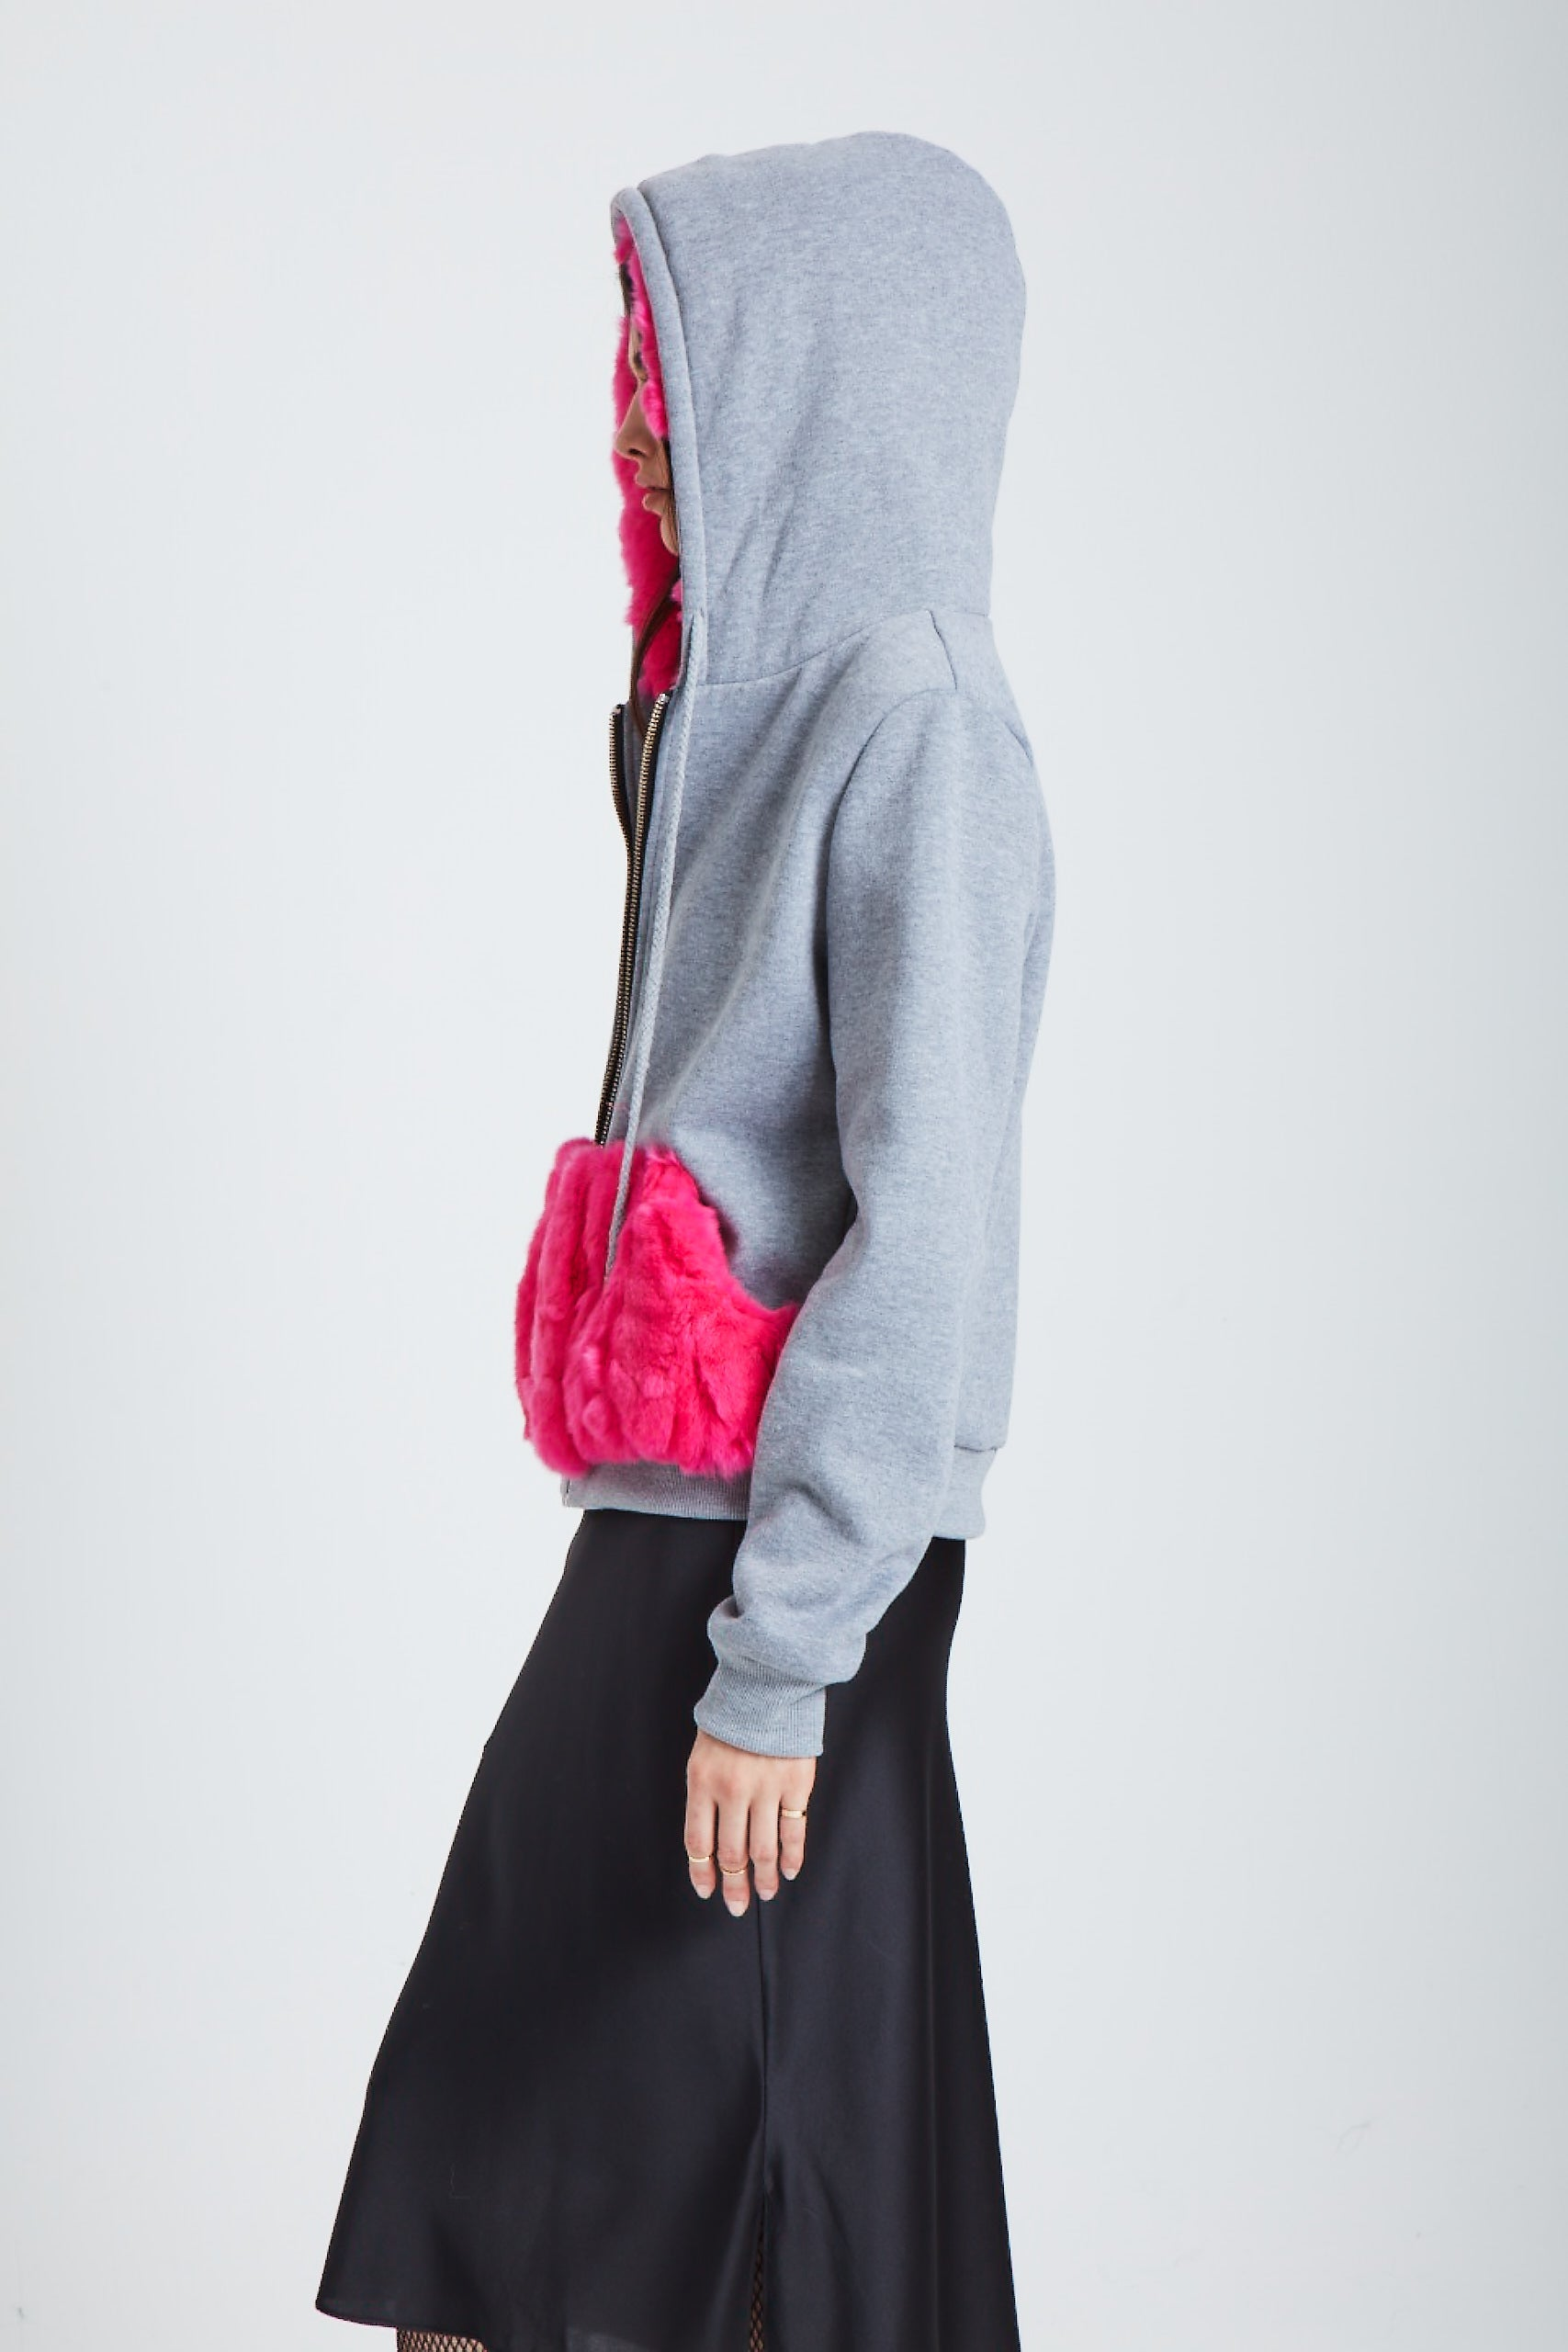 The Halley's Comet Zip-Up Hoodie - Neon Pink